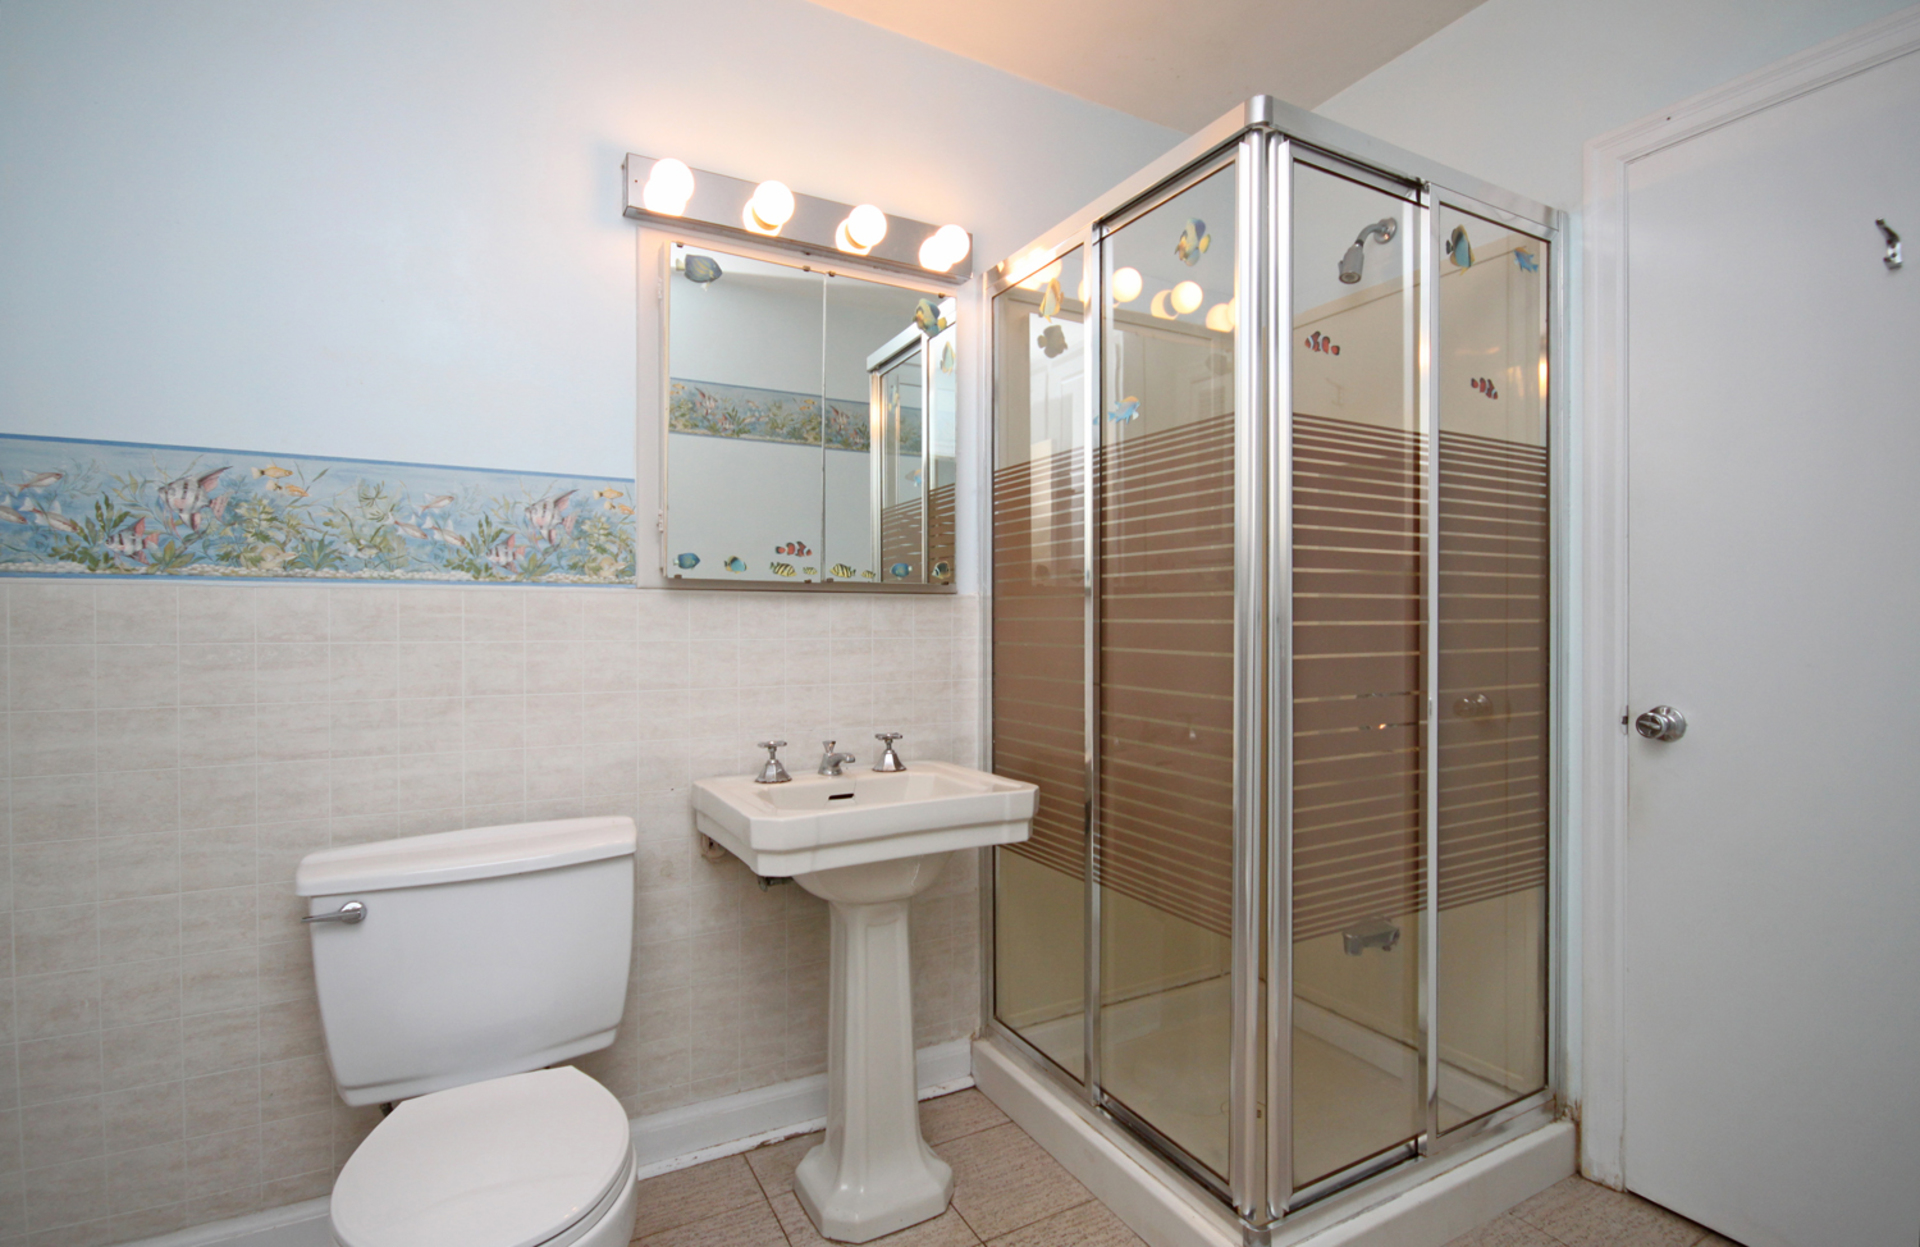 3 Piece Bathroom at 166 Underhill Drive, Parkwoods-Donalda, Toronto